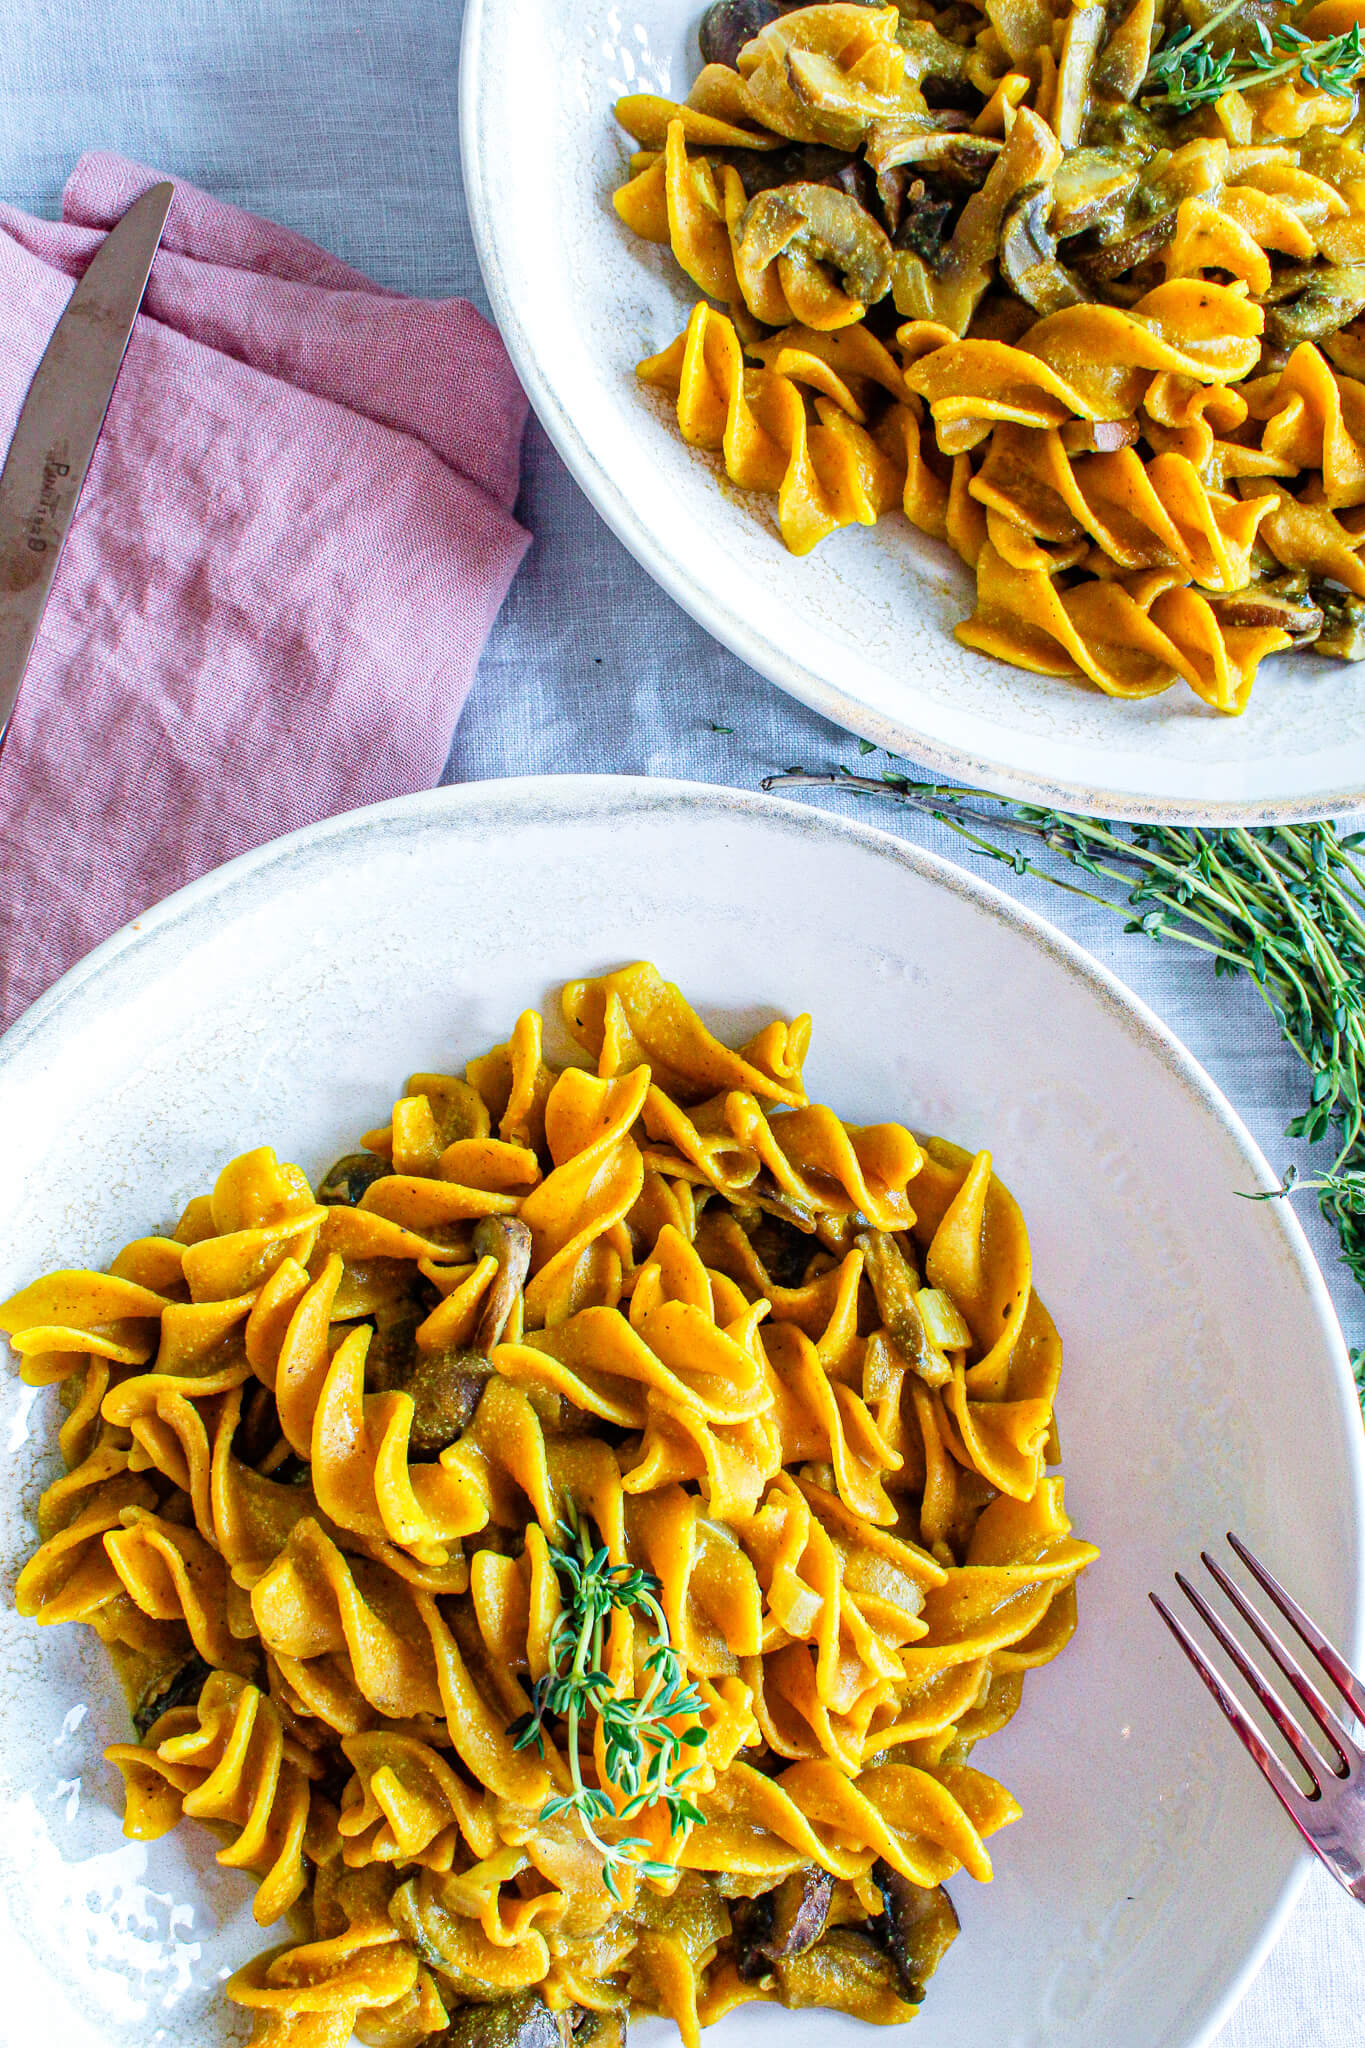 Sustainable and Plant-based Lifestyle influencer shares her delicious porcini pasta risotto recipe!